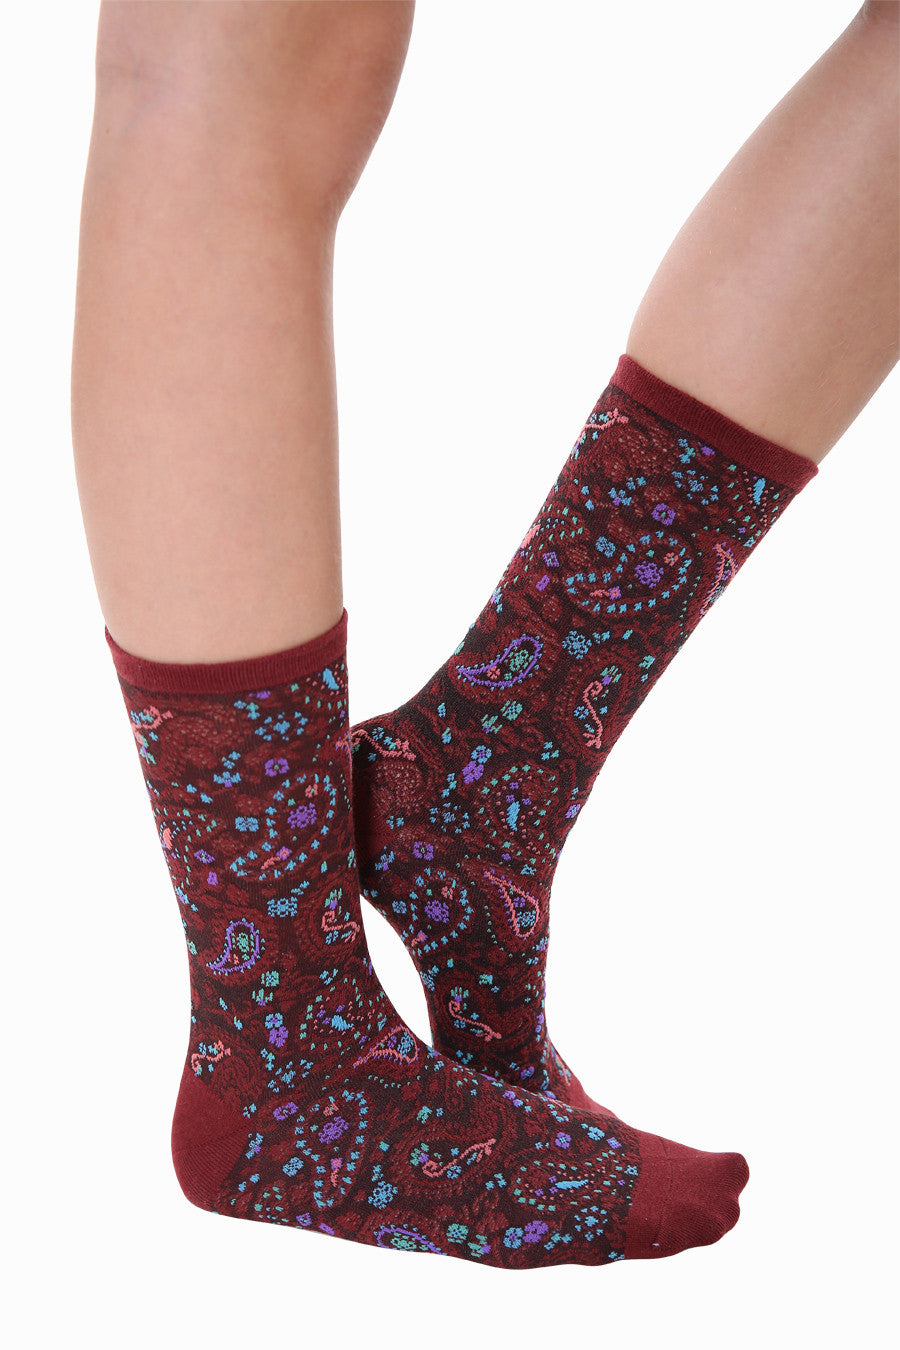 Vintage Print Socks In Burgundy